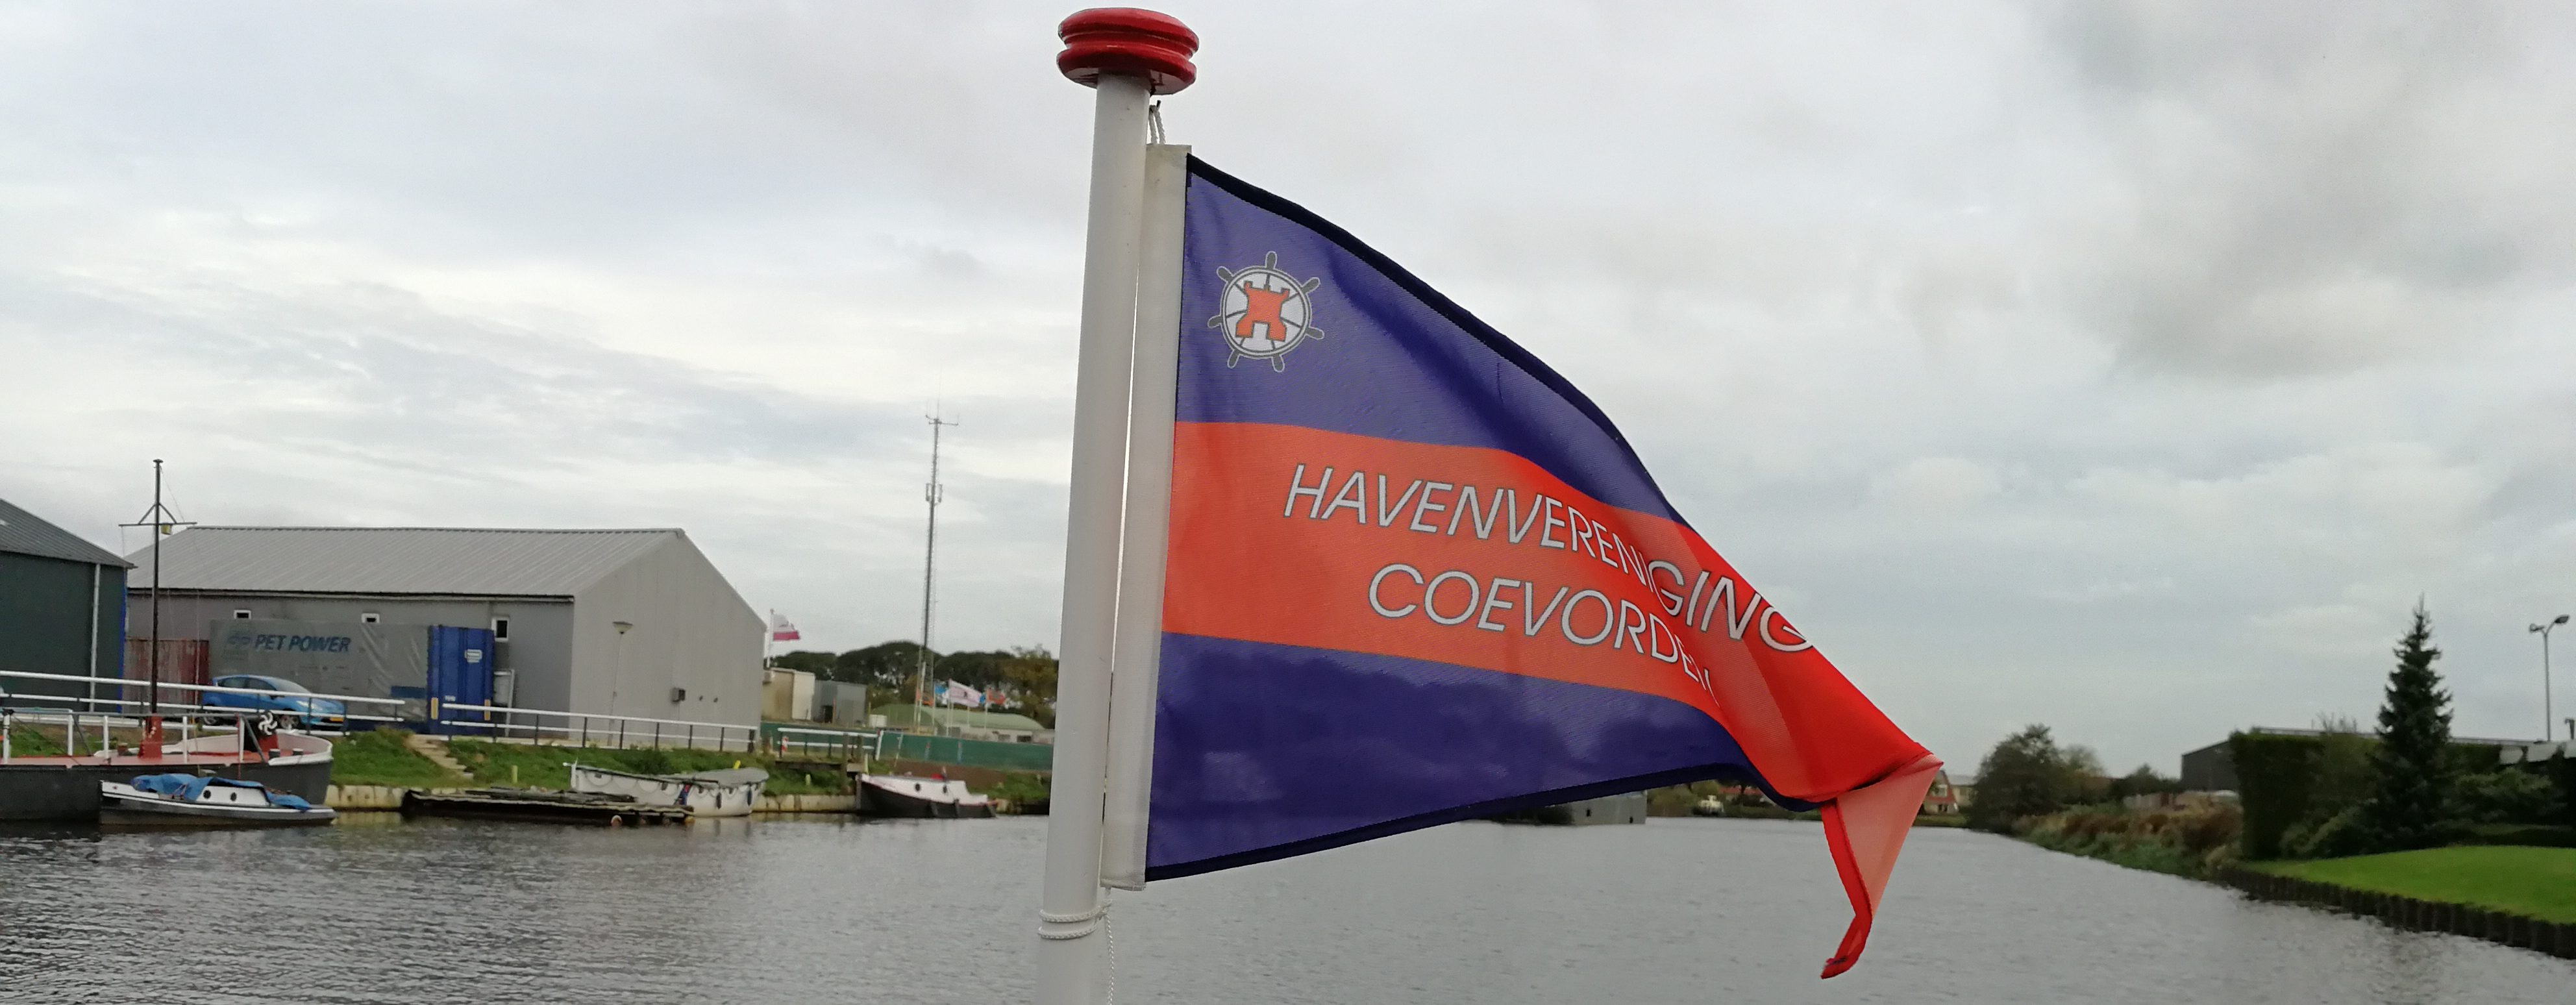 Havenvereniging Coevorden